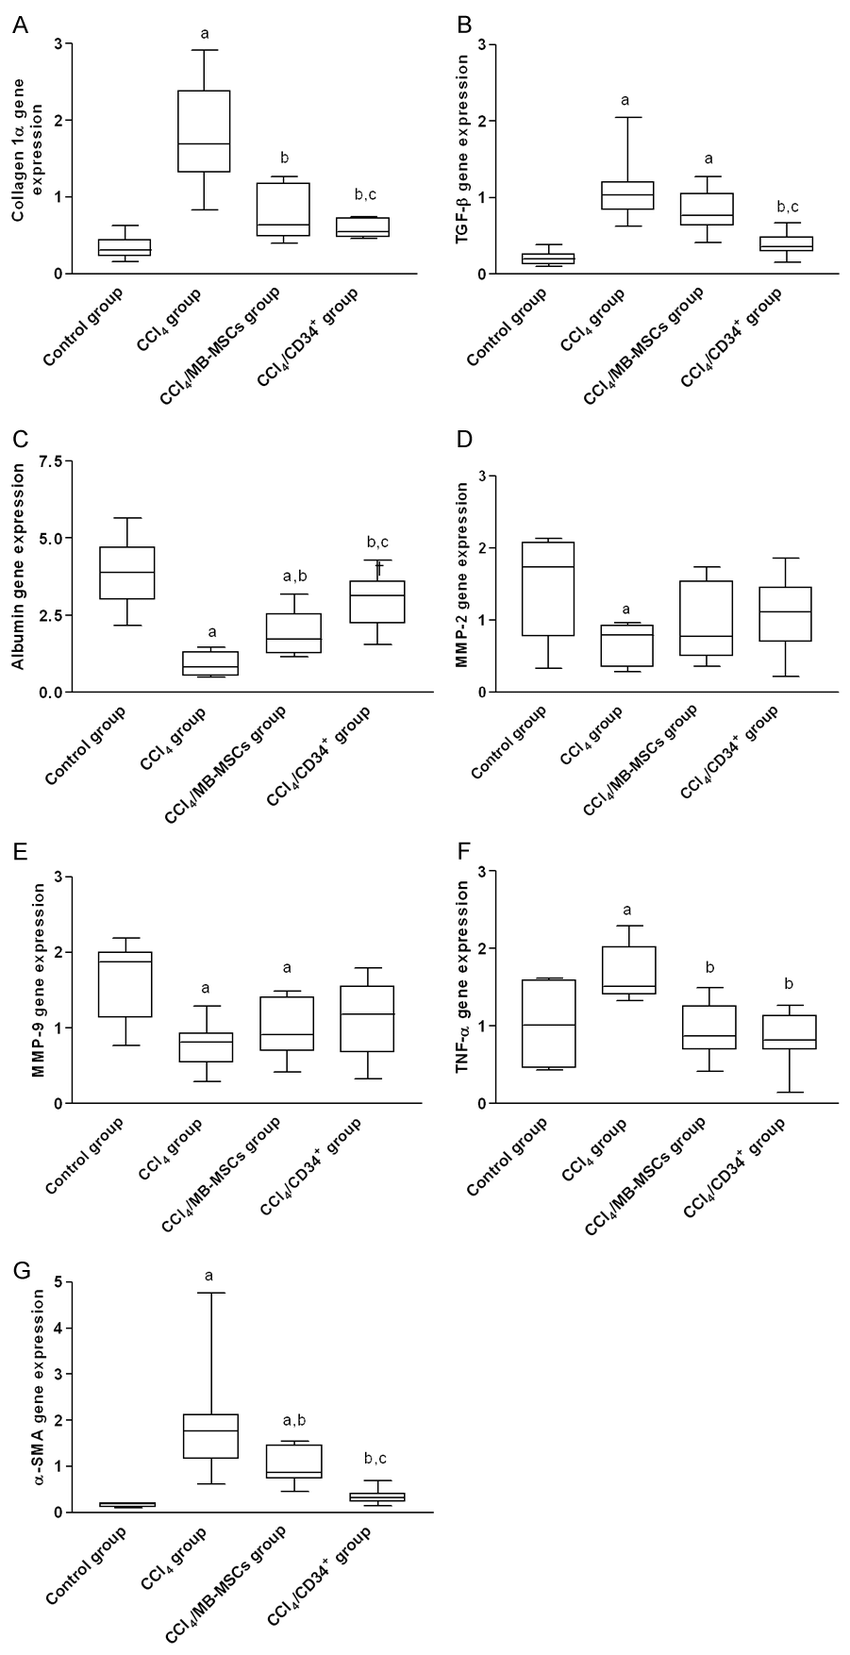 medium resolution of box plot median value lower and upper quartile representation of gene expression